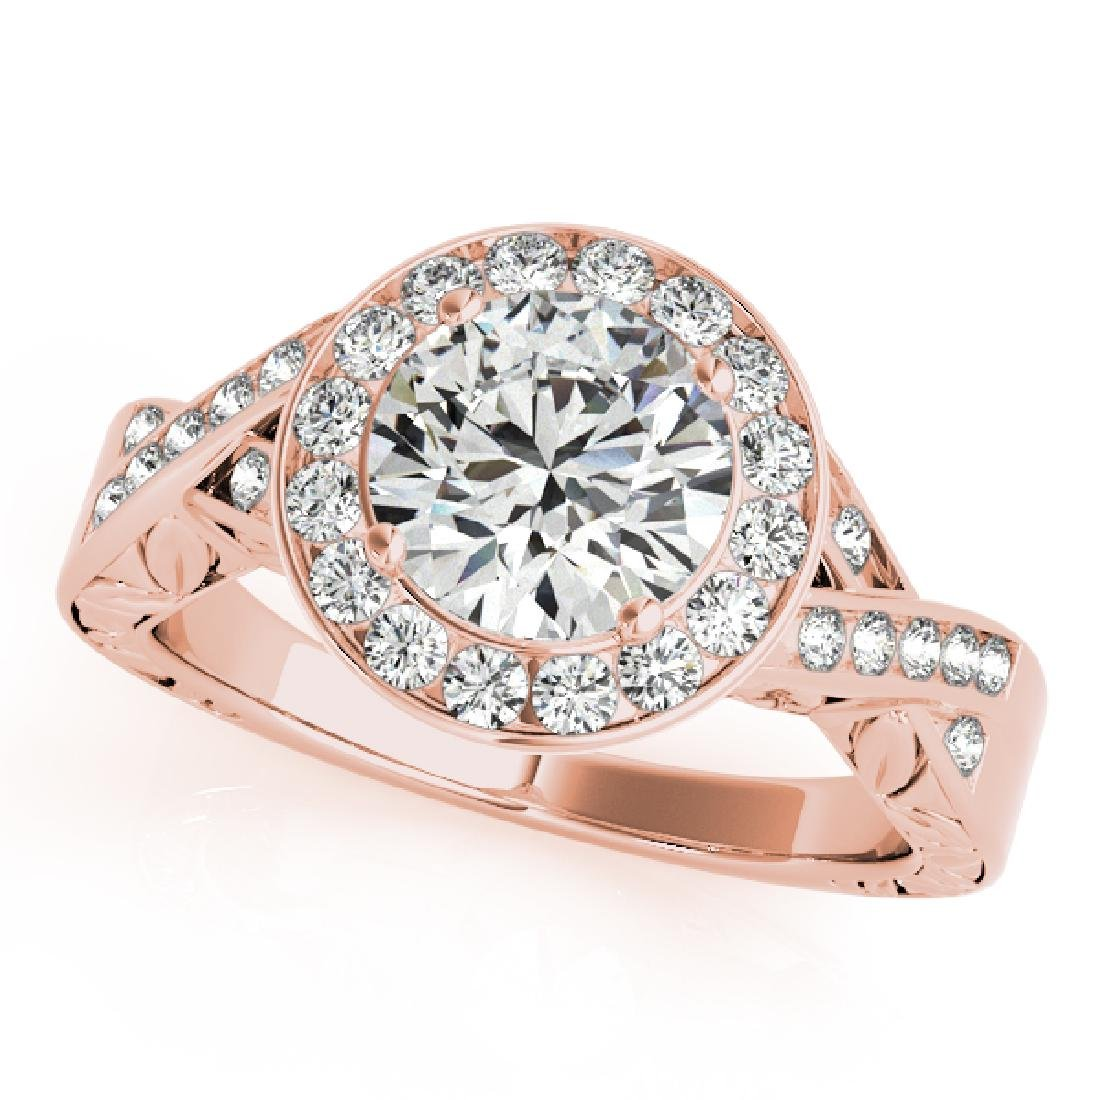 CERTIFIED 18K ROSE GOLD 1.01 CT G-H/VS-SI1 DIAMOND HALO